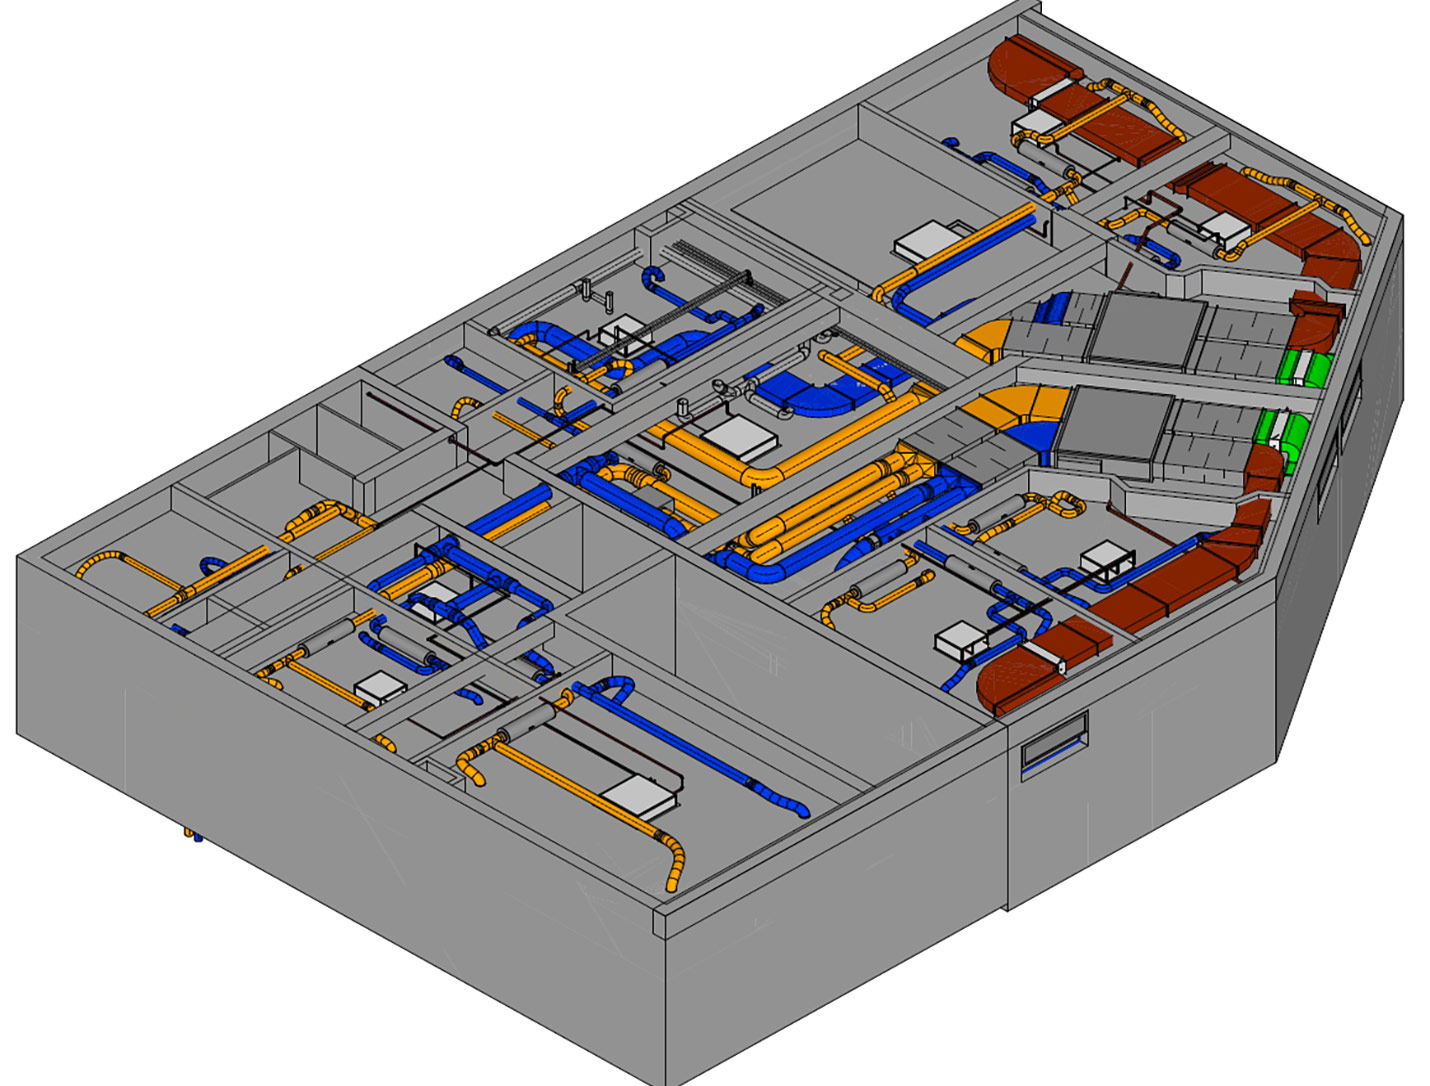 3D-Modell eines Systemplans